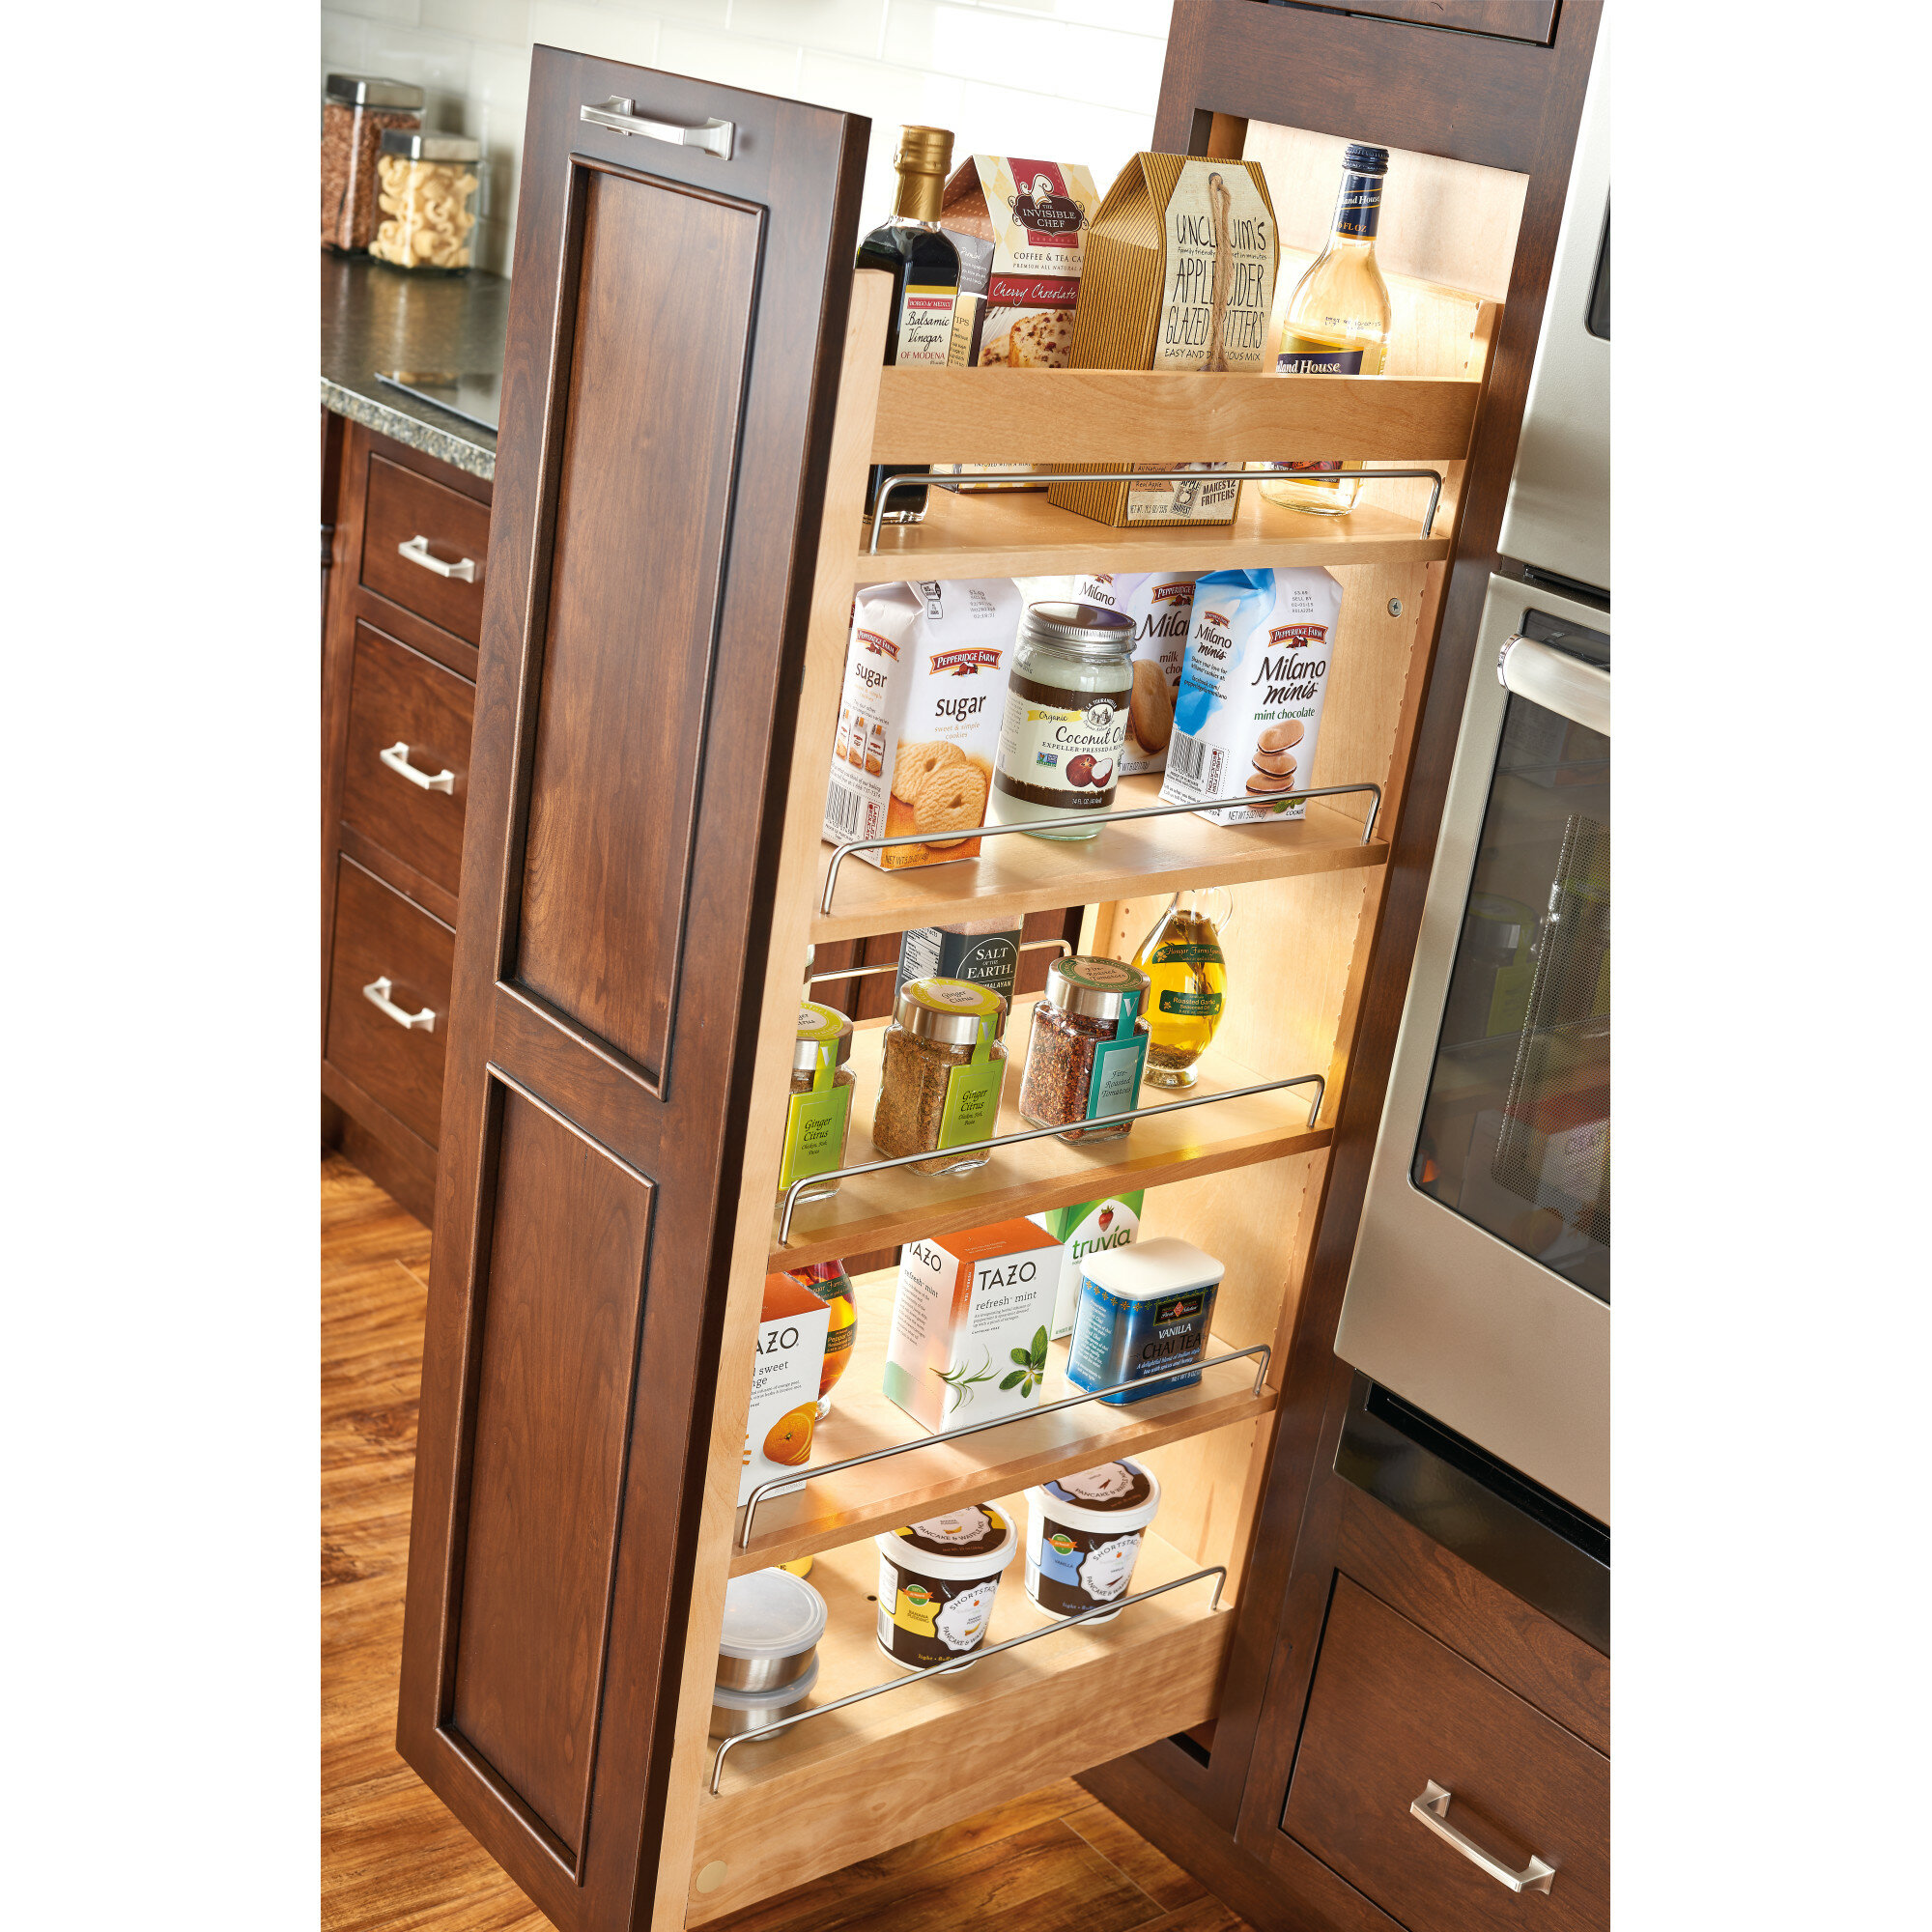 Cabinet Pull Out Shelves Kitchen Pantry Storage: Kitchen Pantry Cabinet With Pull Out Shelves